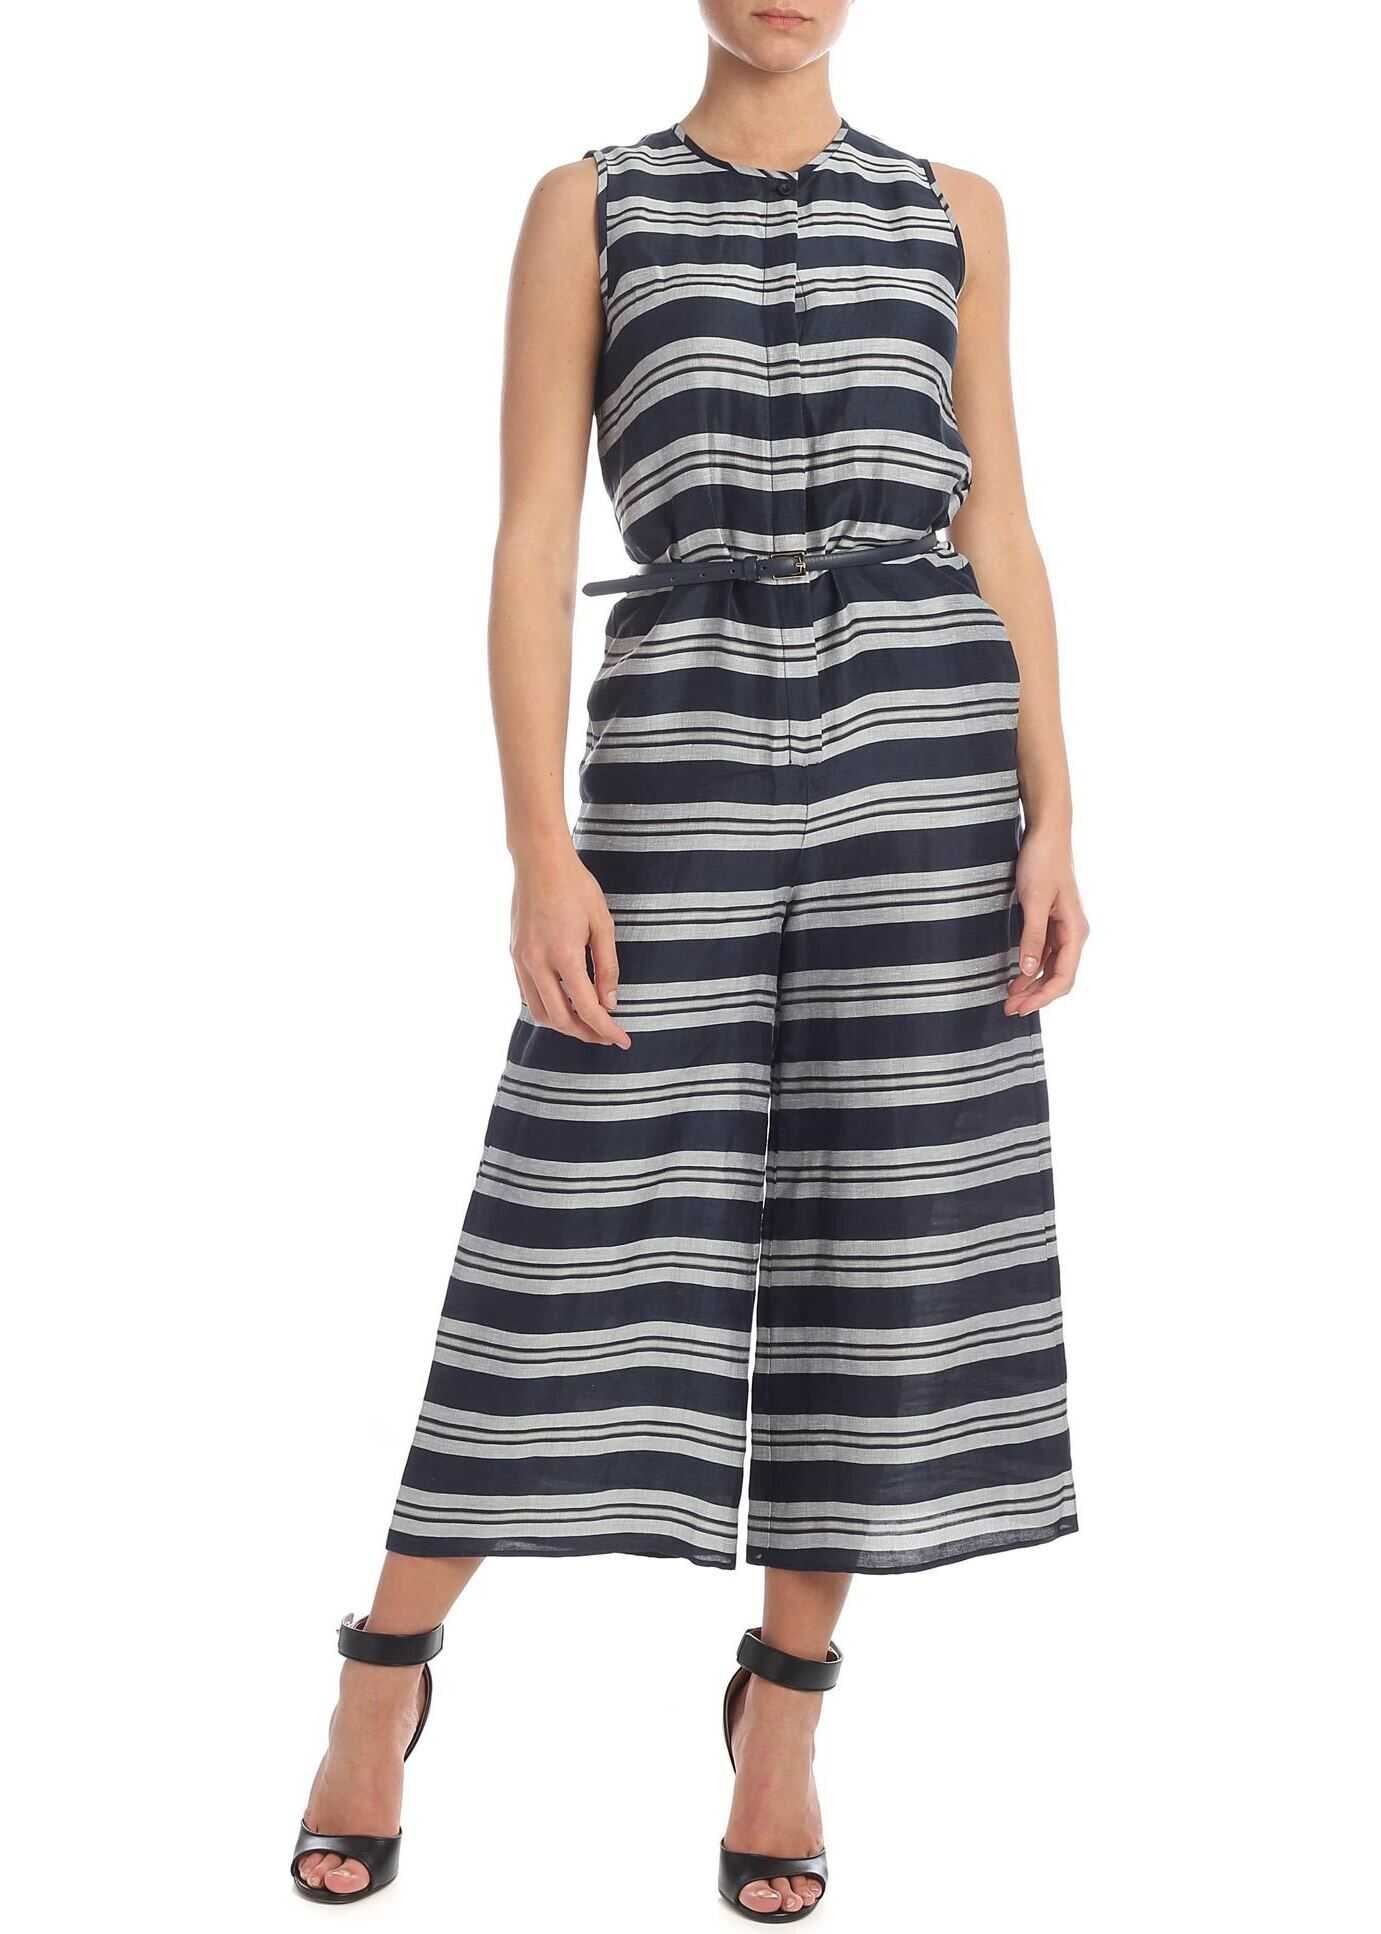 Max Mara Studio Merano Jumpsuit In Blue With Gray Stripes Blue